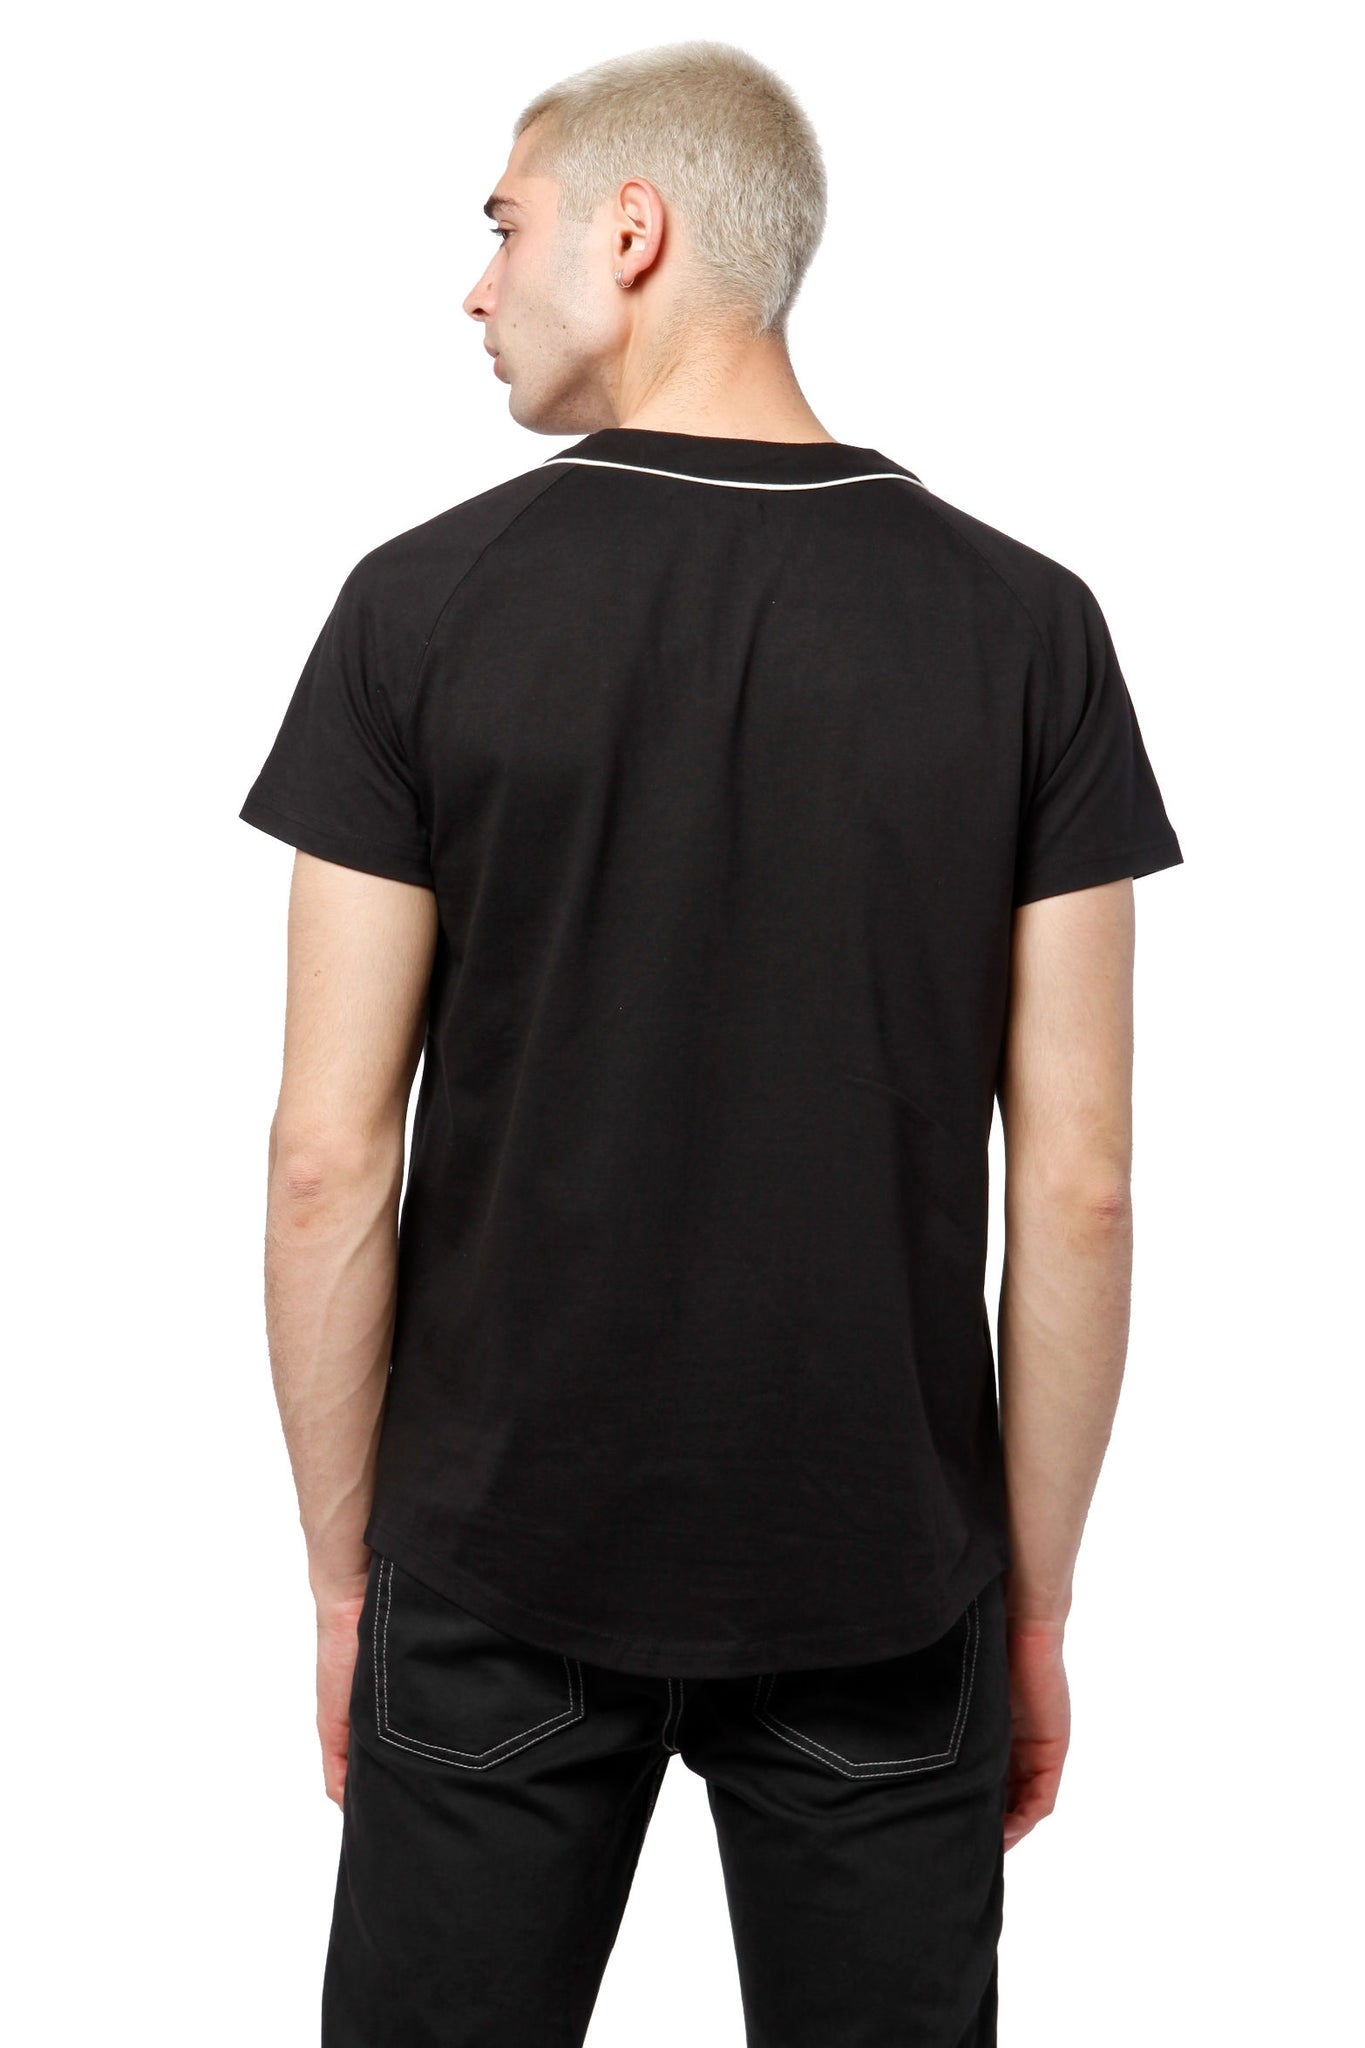 Baseball Shirt - Black